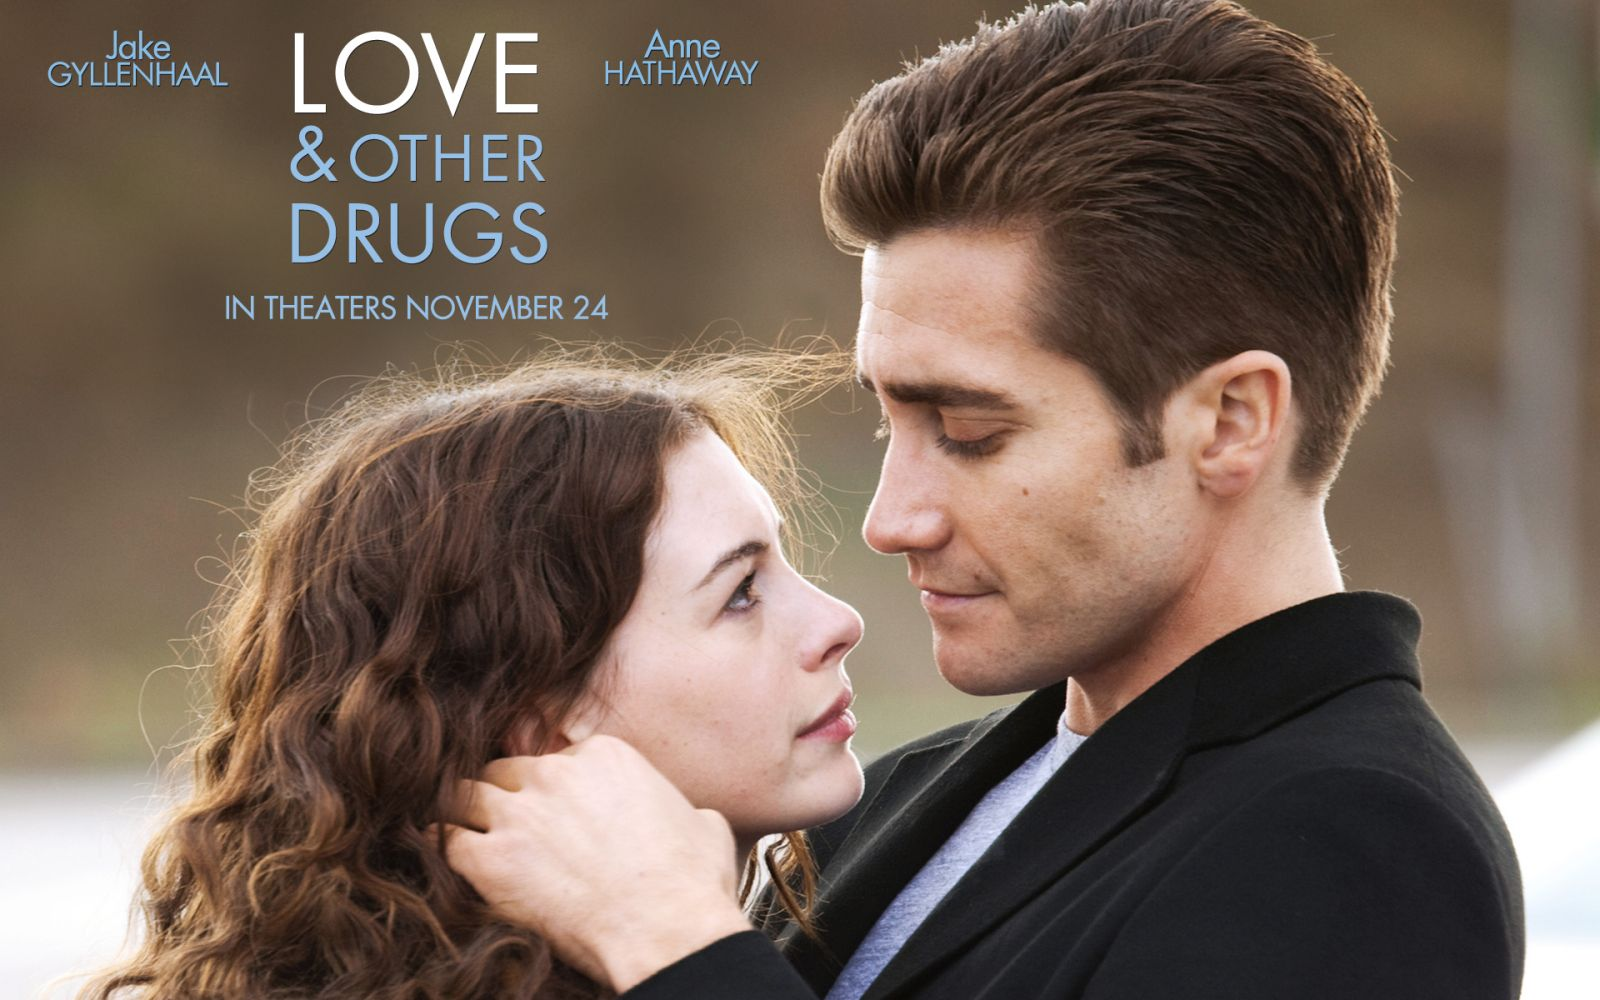 http://4.bp.blogspot.com/_QV09g9YKPd4/TS_ueLgSI0I/AAAAAAAAAr8/a6vZ-hOHNXQ/s1600/love_and_other_drugs_wallpaper.jpg